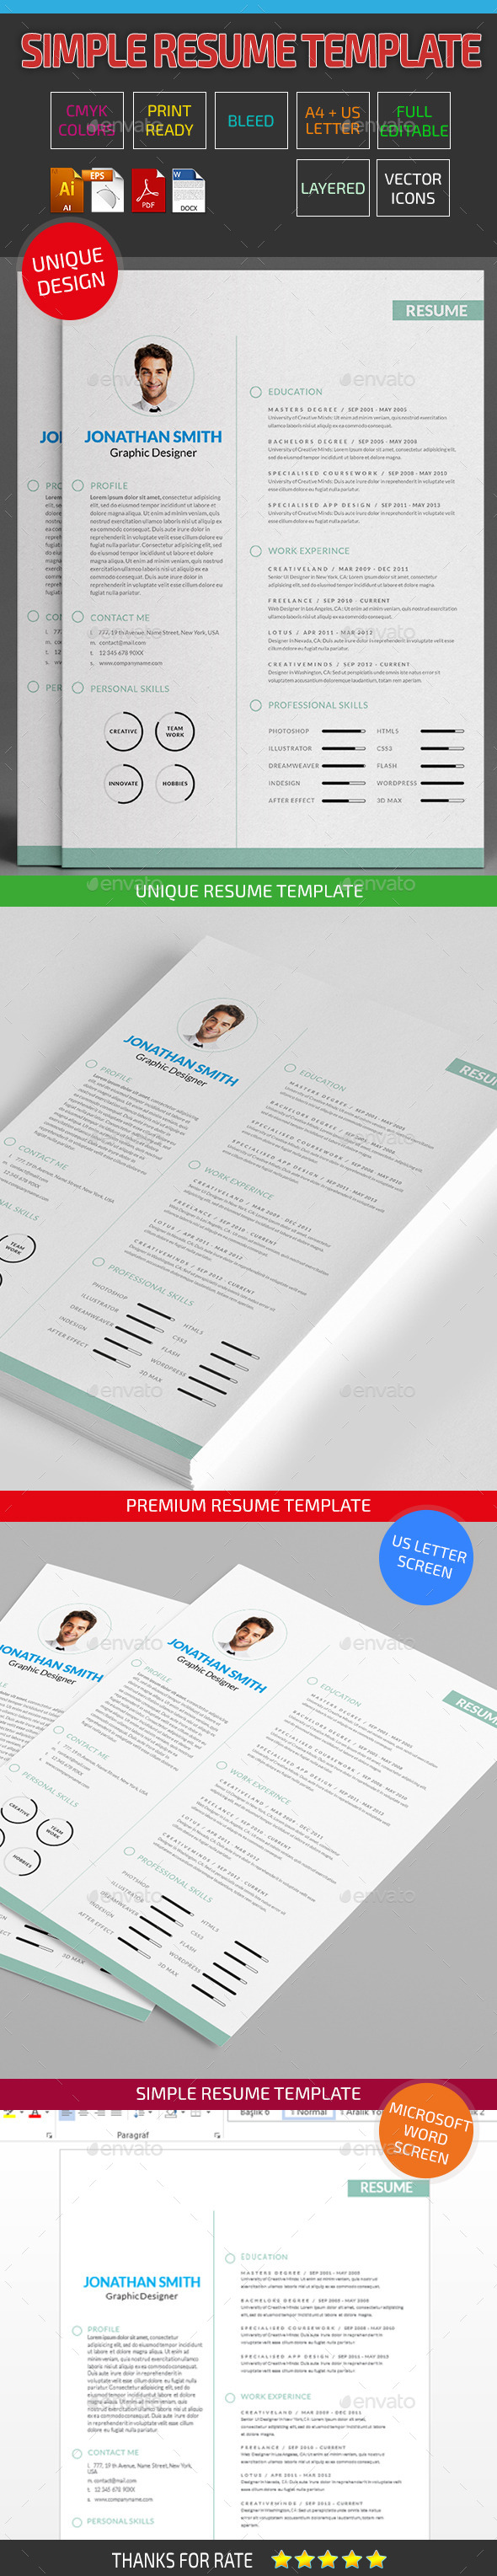 Simple Resume Template 07